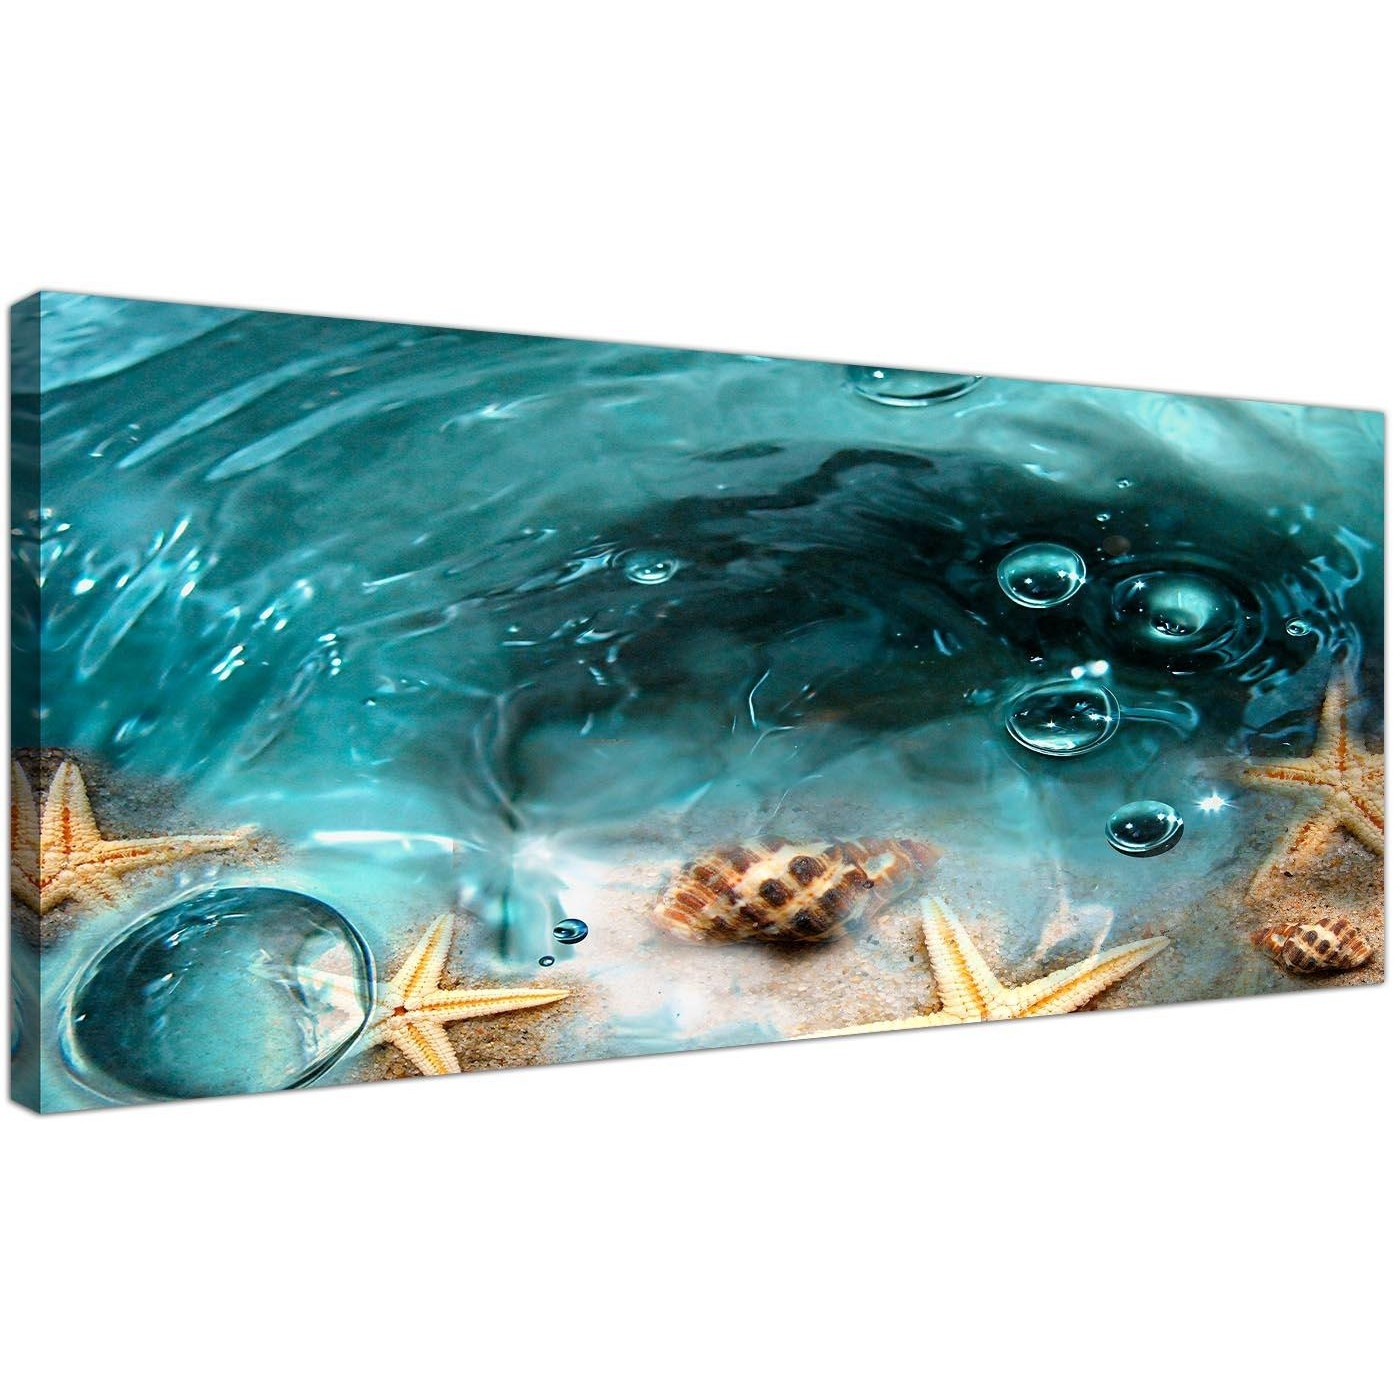 Teal Seaside Starfish In Sand Bathroom Wall Art Regarding 2018 Bathroom Canvas Wall Art (View 12 of 15)